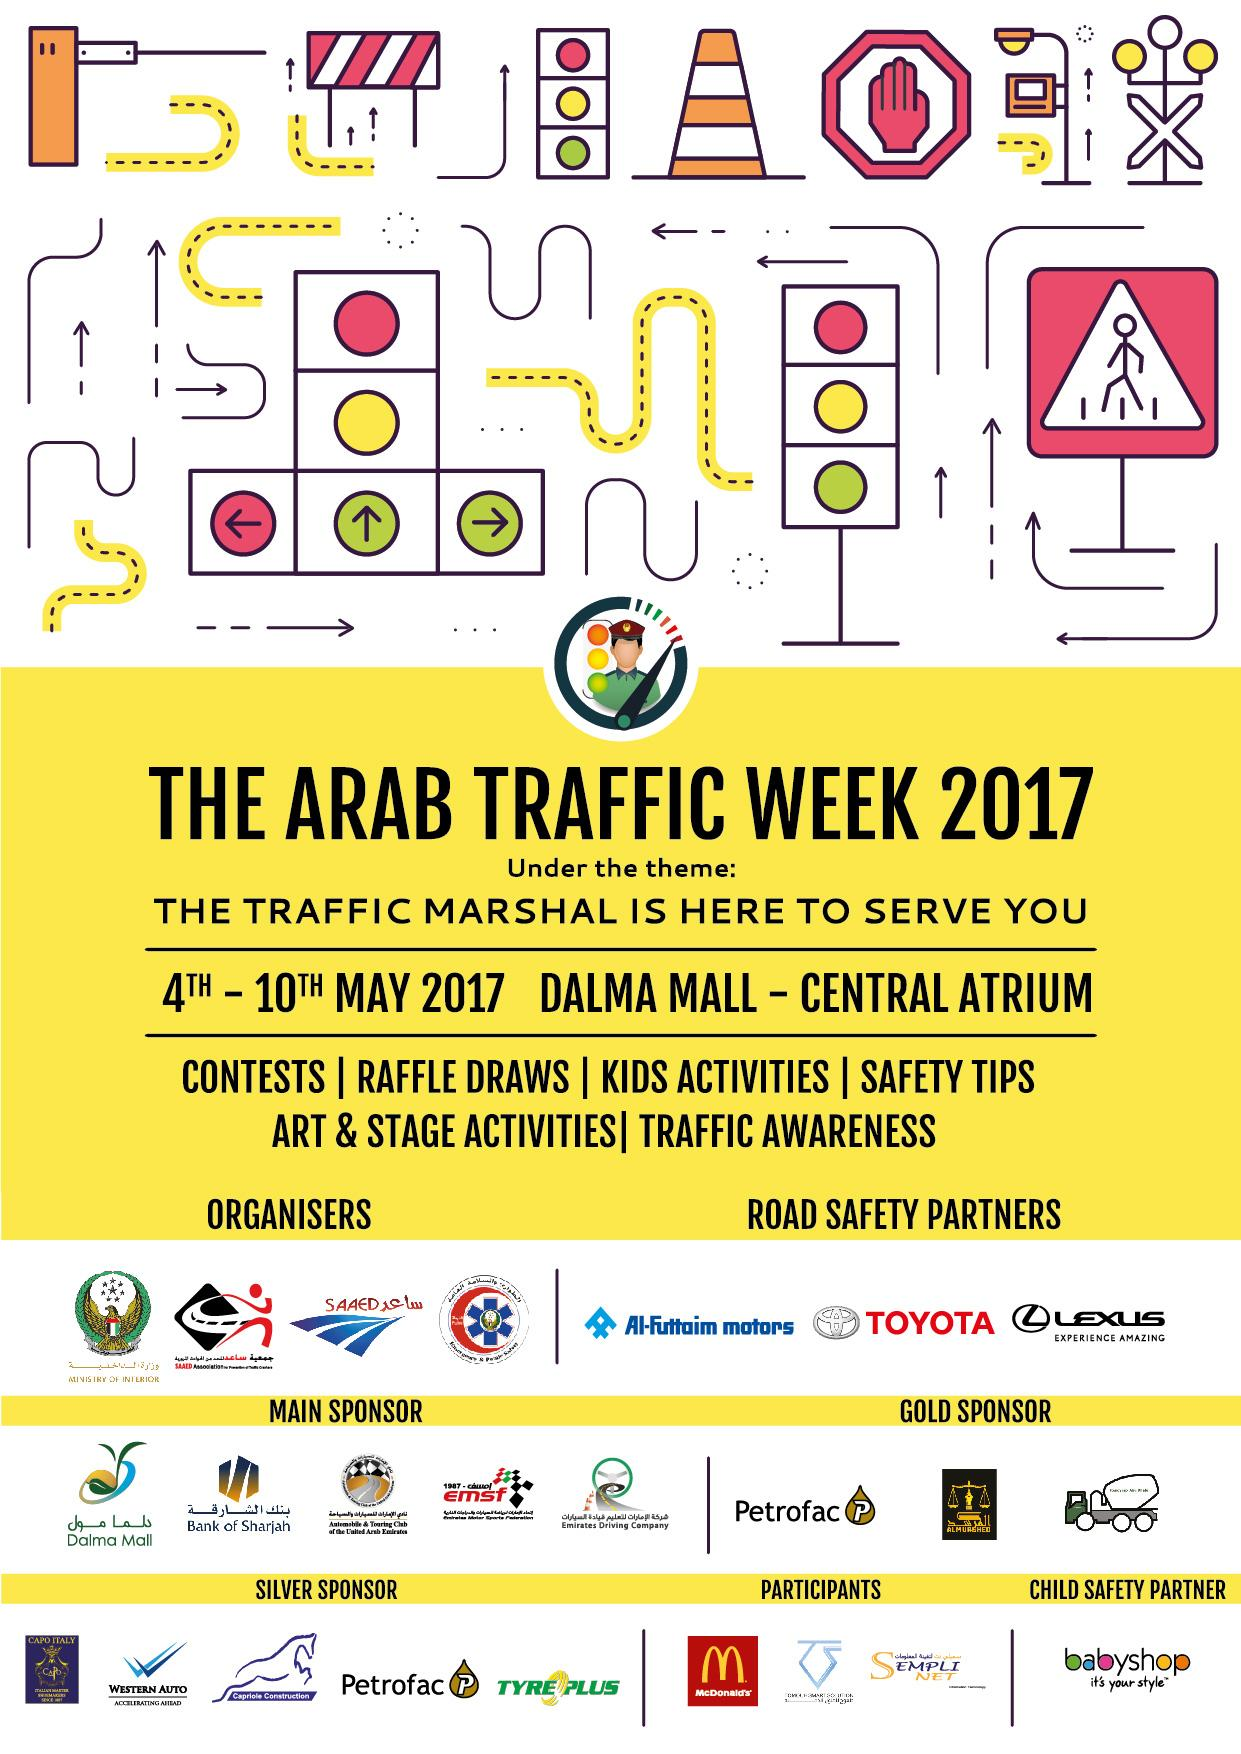 Arab Traffic Week 2017 at Dalma Mall